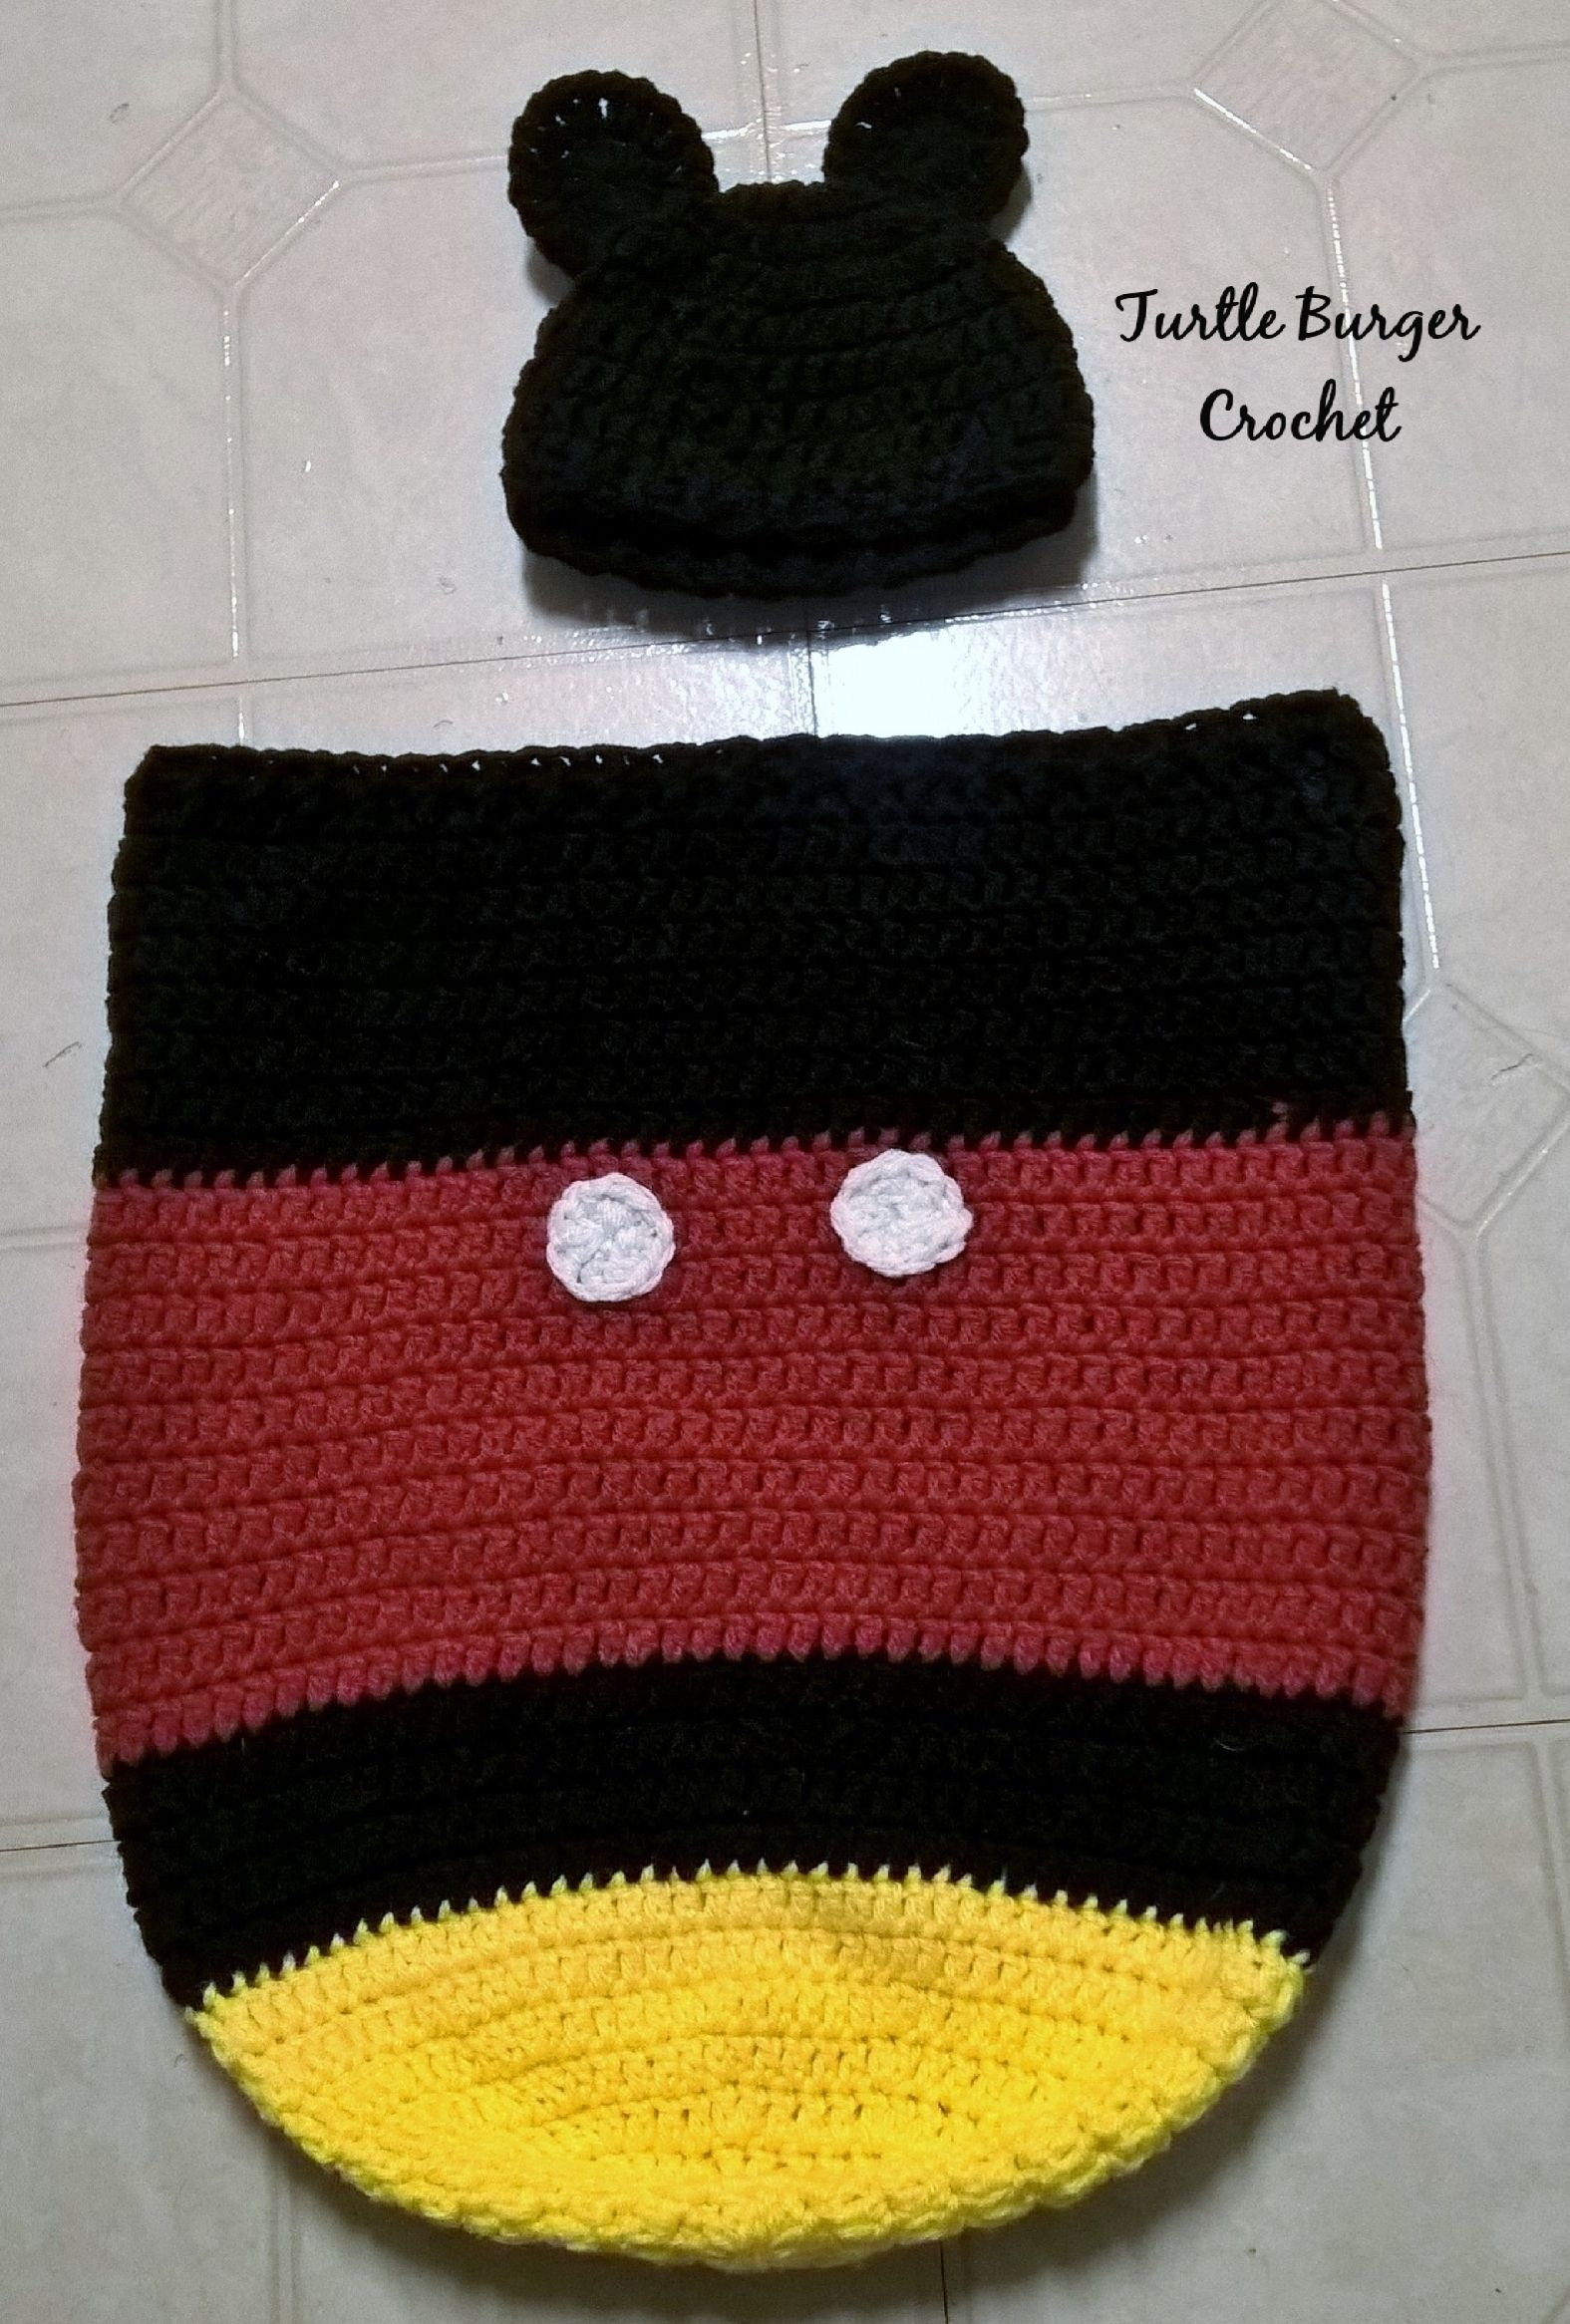 Free Pattern: Mickey Mouse Newborn Cocoon & Hat | Blog | Newborn - Free Printable Crochet Patterns For Baby Cocoons